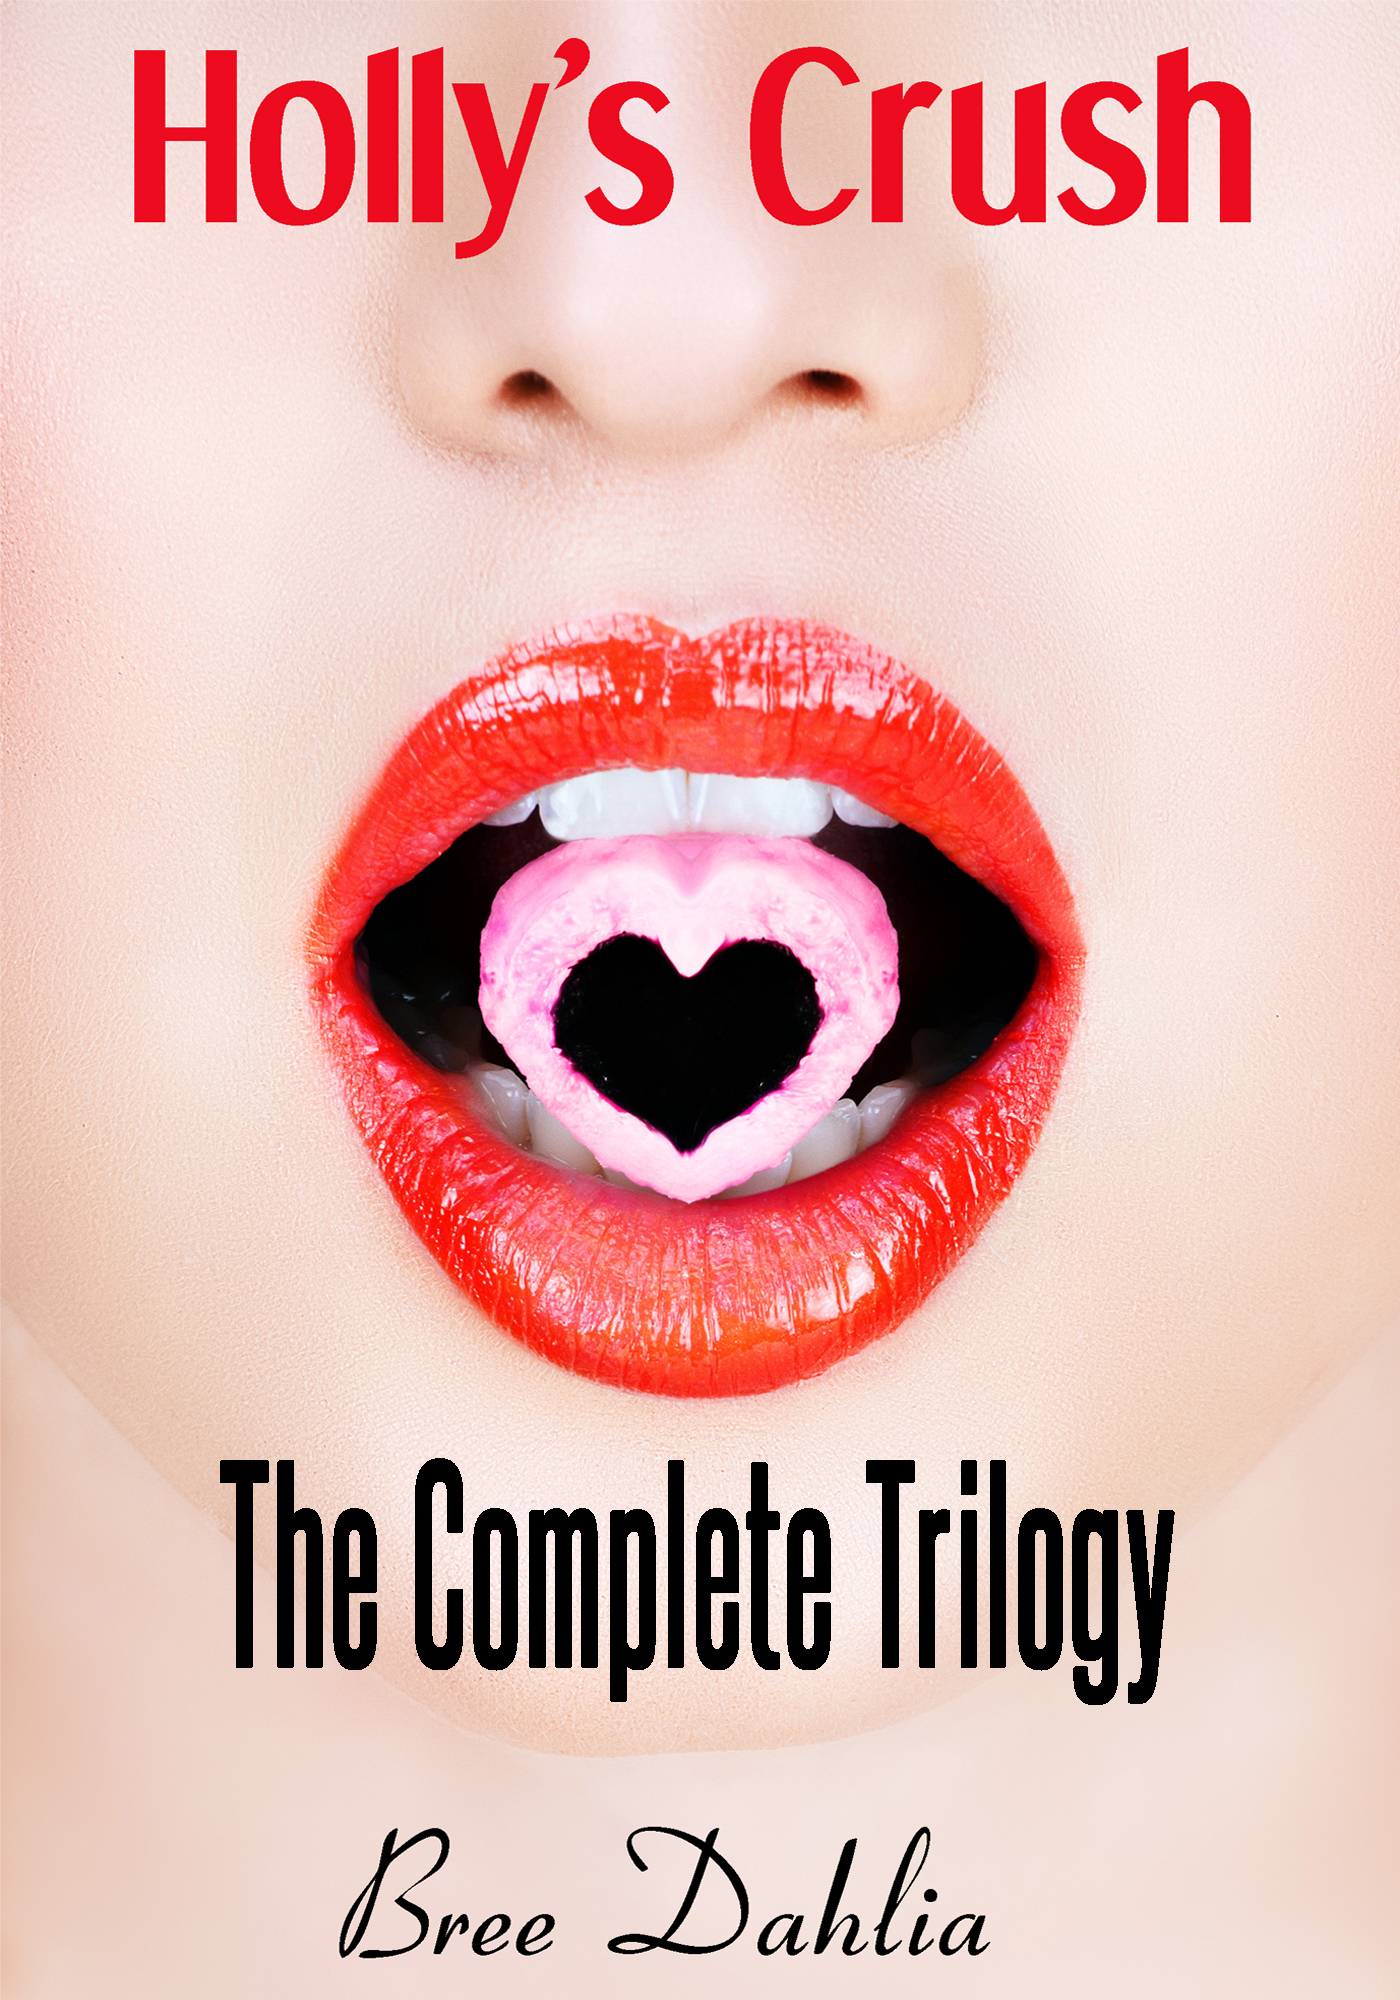 Bree Dahlia - Holly's Crush: The Complete Trilogy